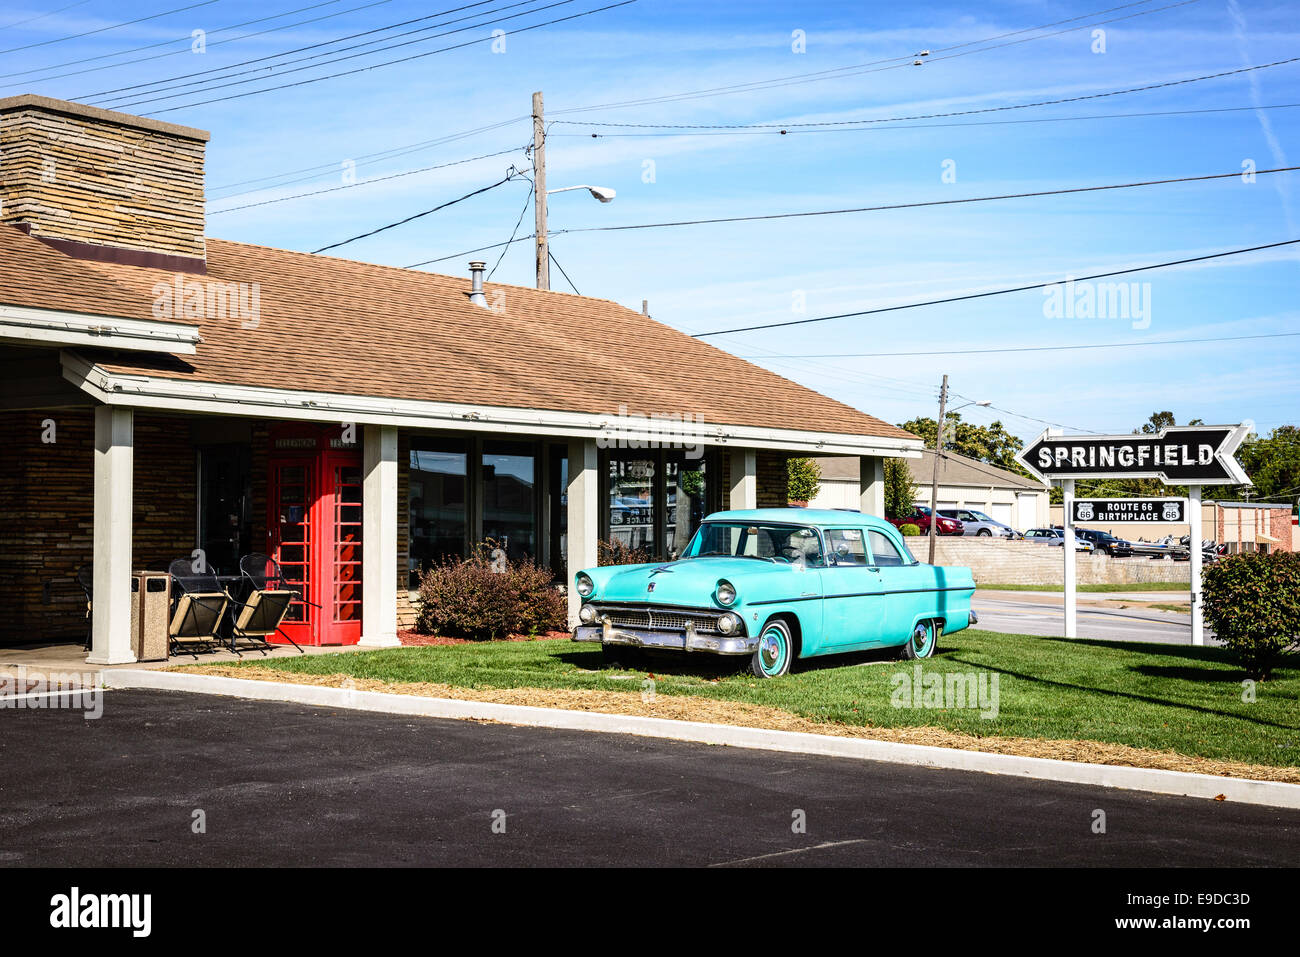 1955 Ford Stock Photos Images Page 3 Alamy F100 Pro Street Custonline Outside Motel Route 66 Rail Haven 203 South Glenstone Avenue Springfield